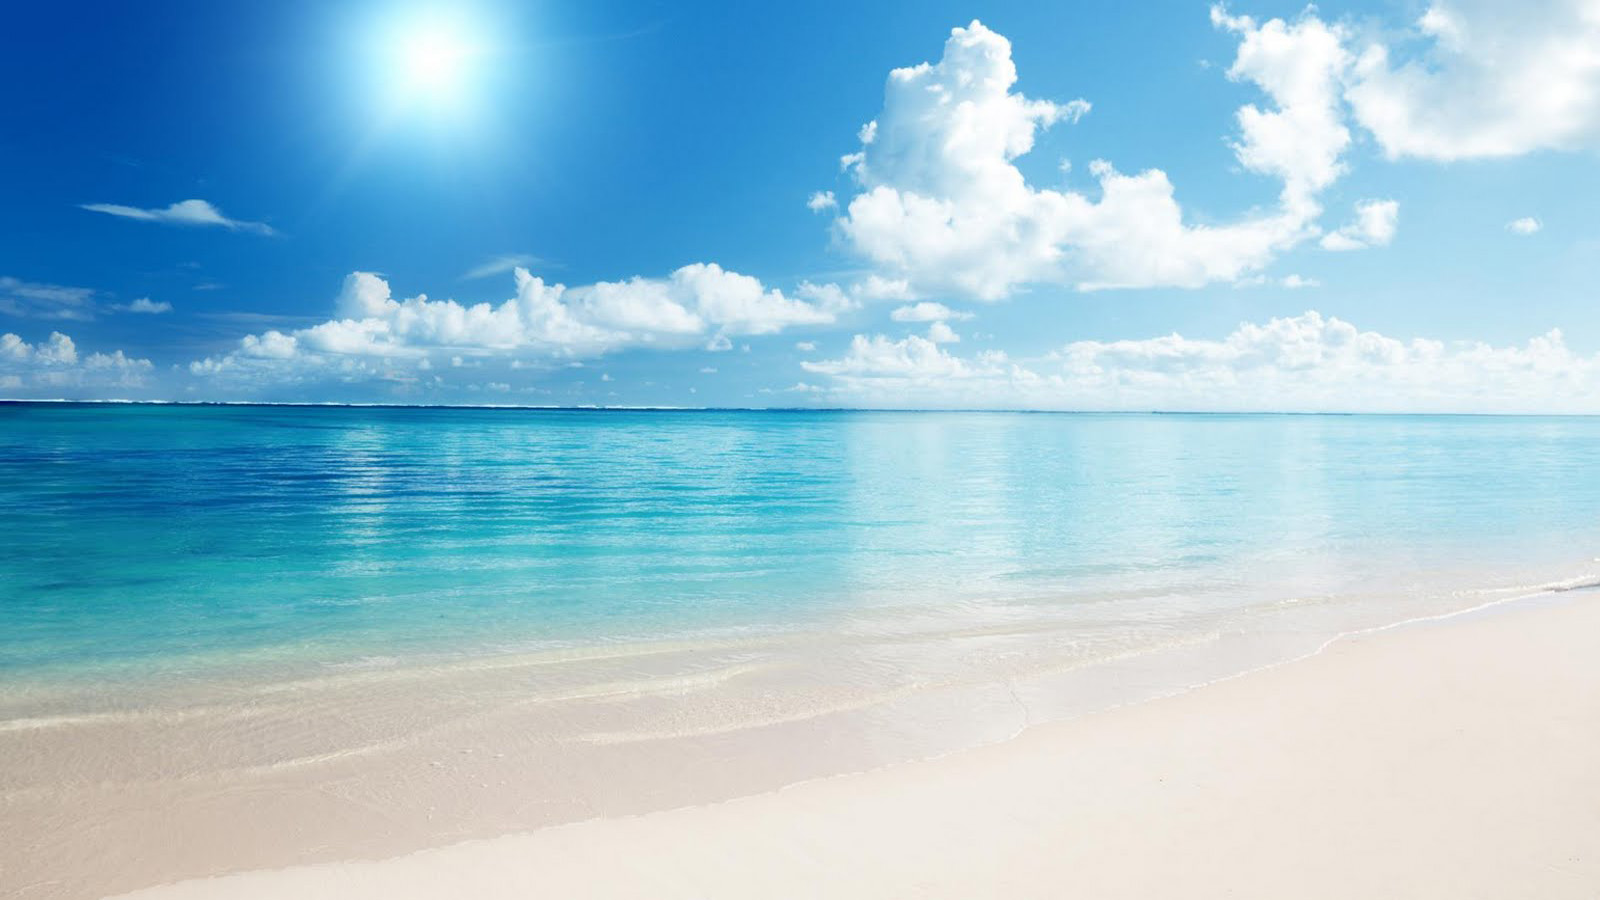 beautiful beach background 17581